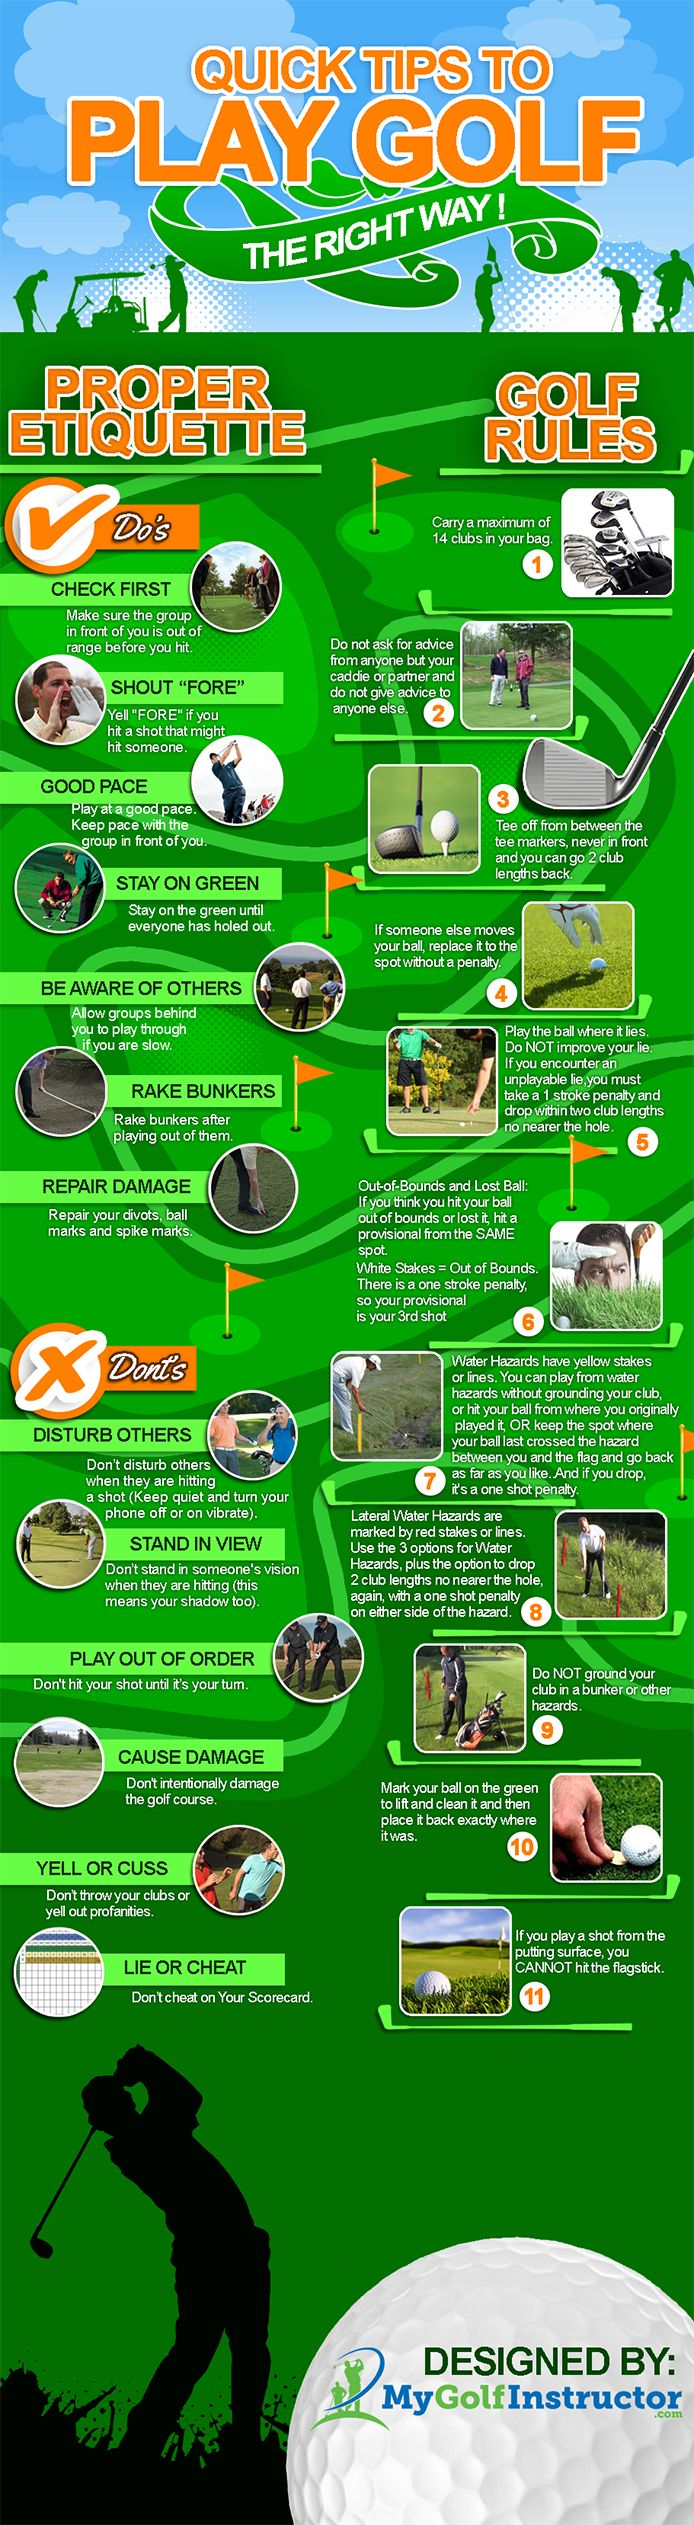 Quick Tips to Play Golf the Right Way